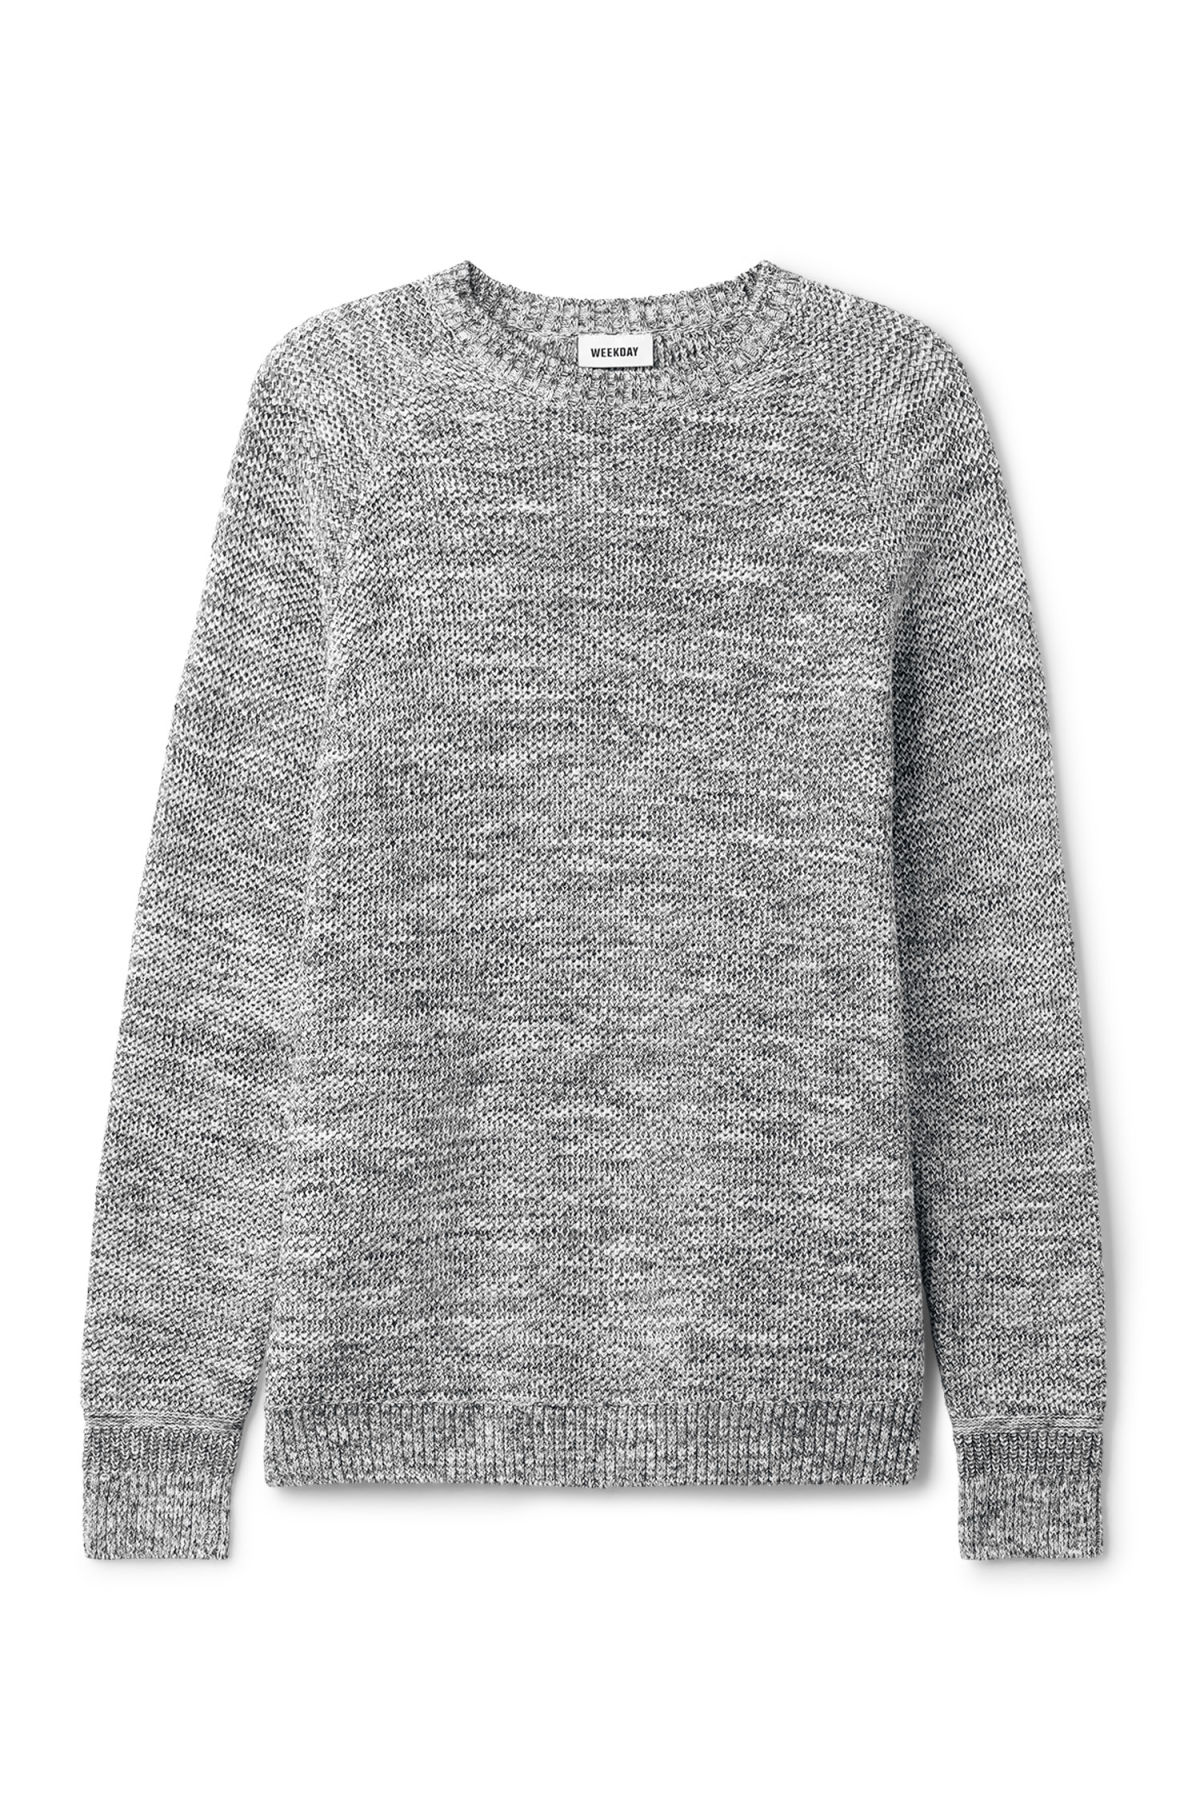 Front image of Weekday cave sweater in black